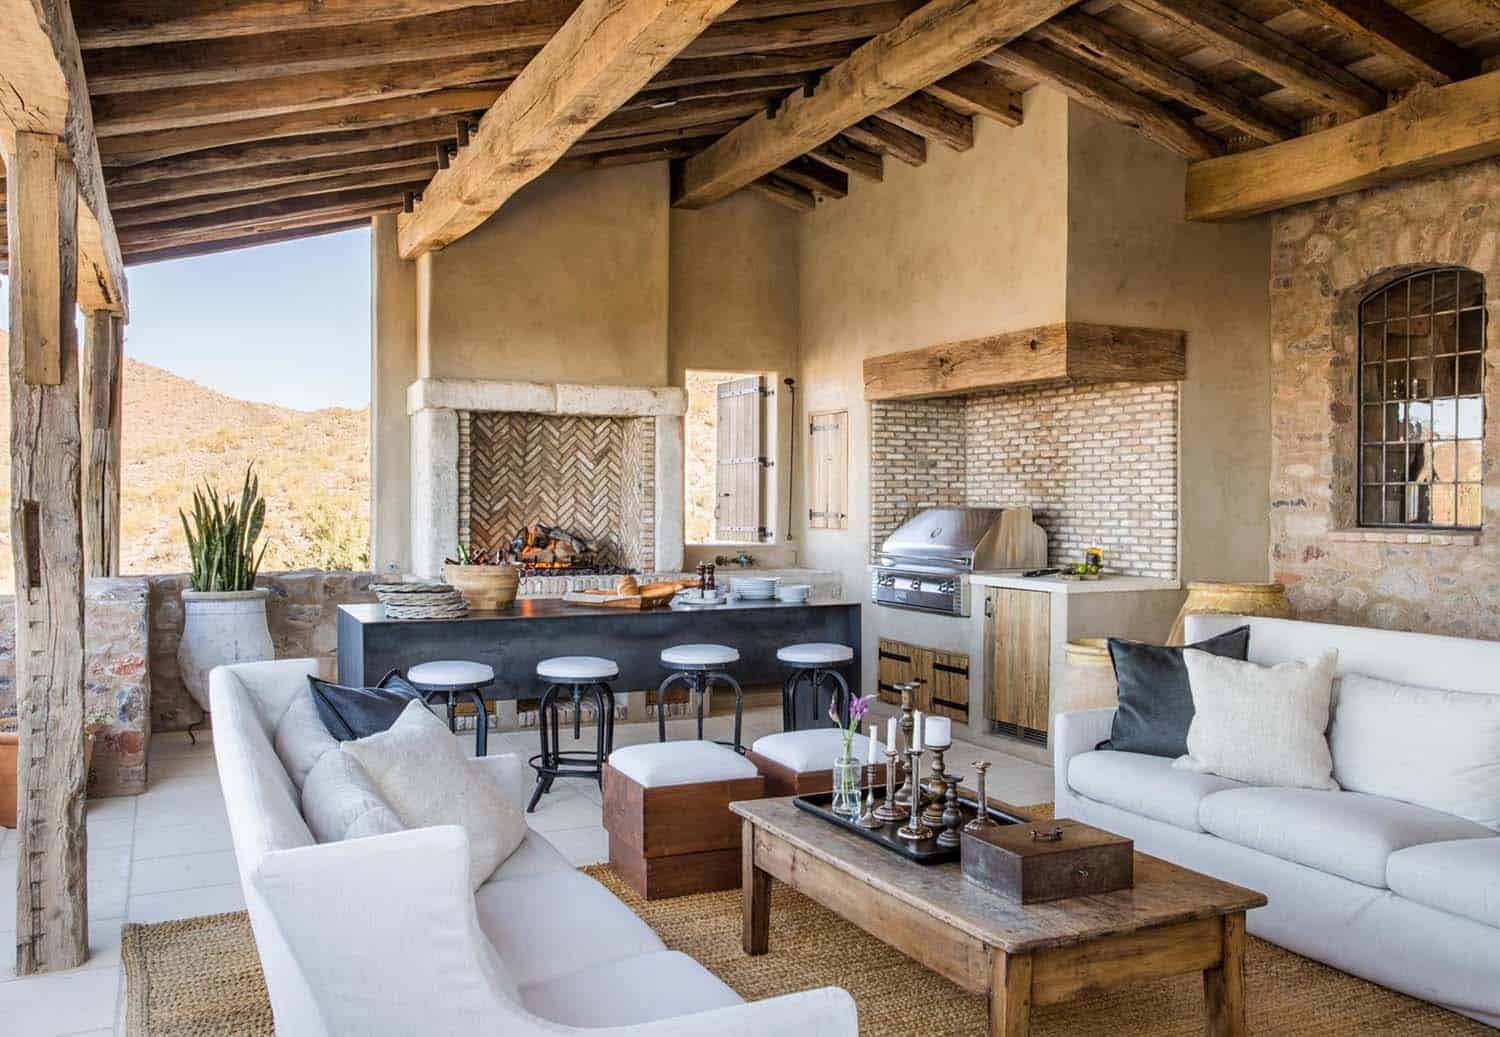 Mediterranean Style Dream Home With Rustic Interiors In